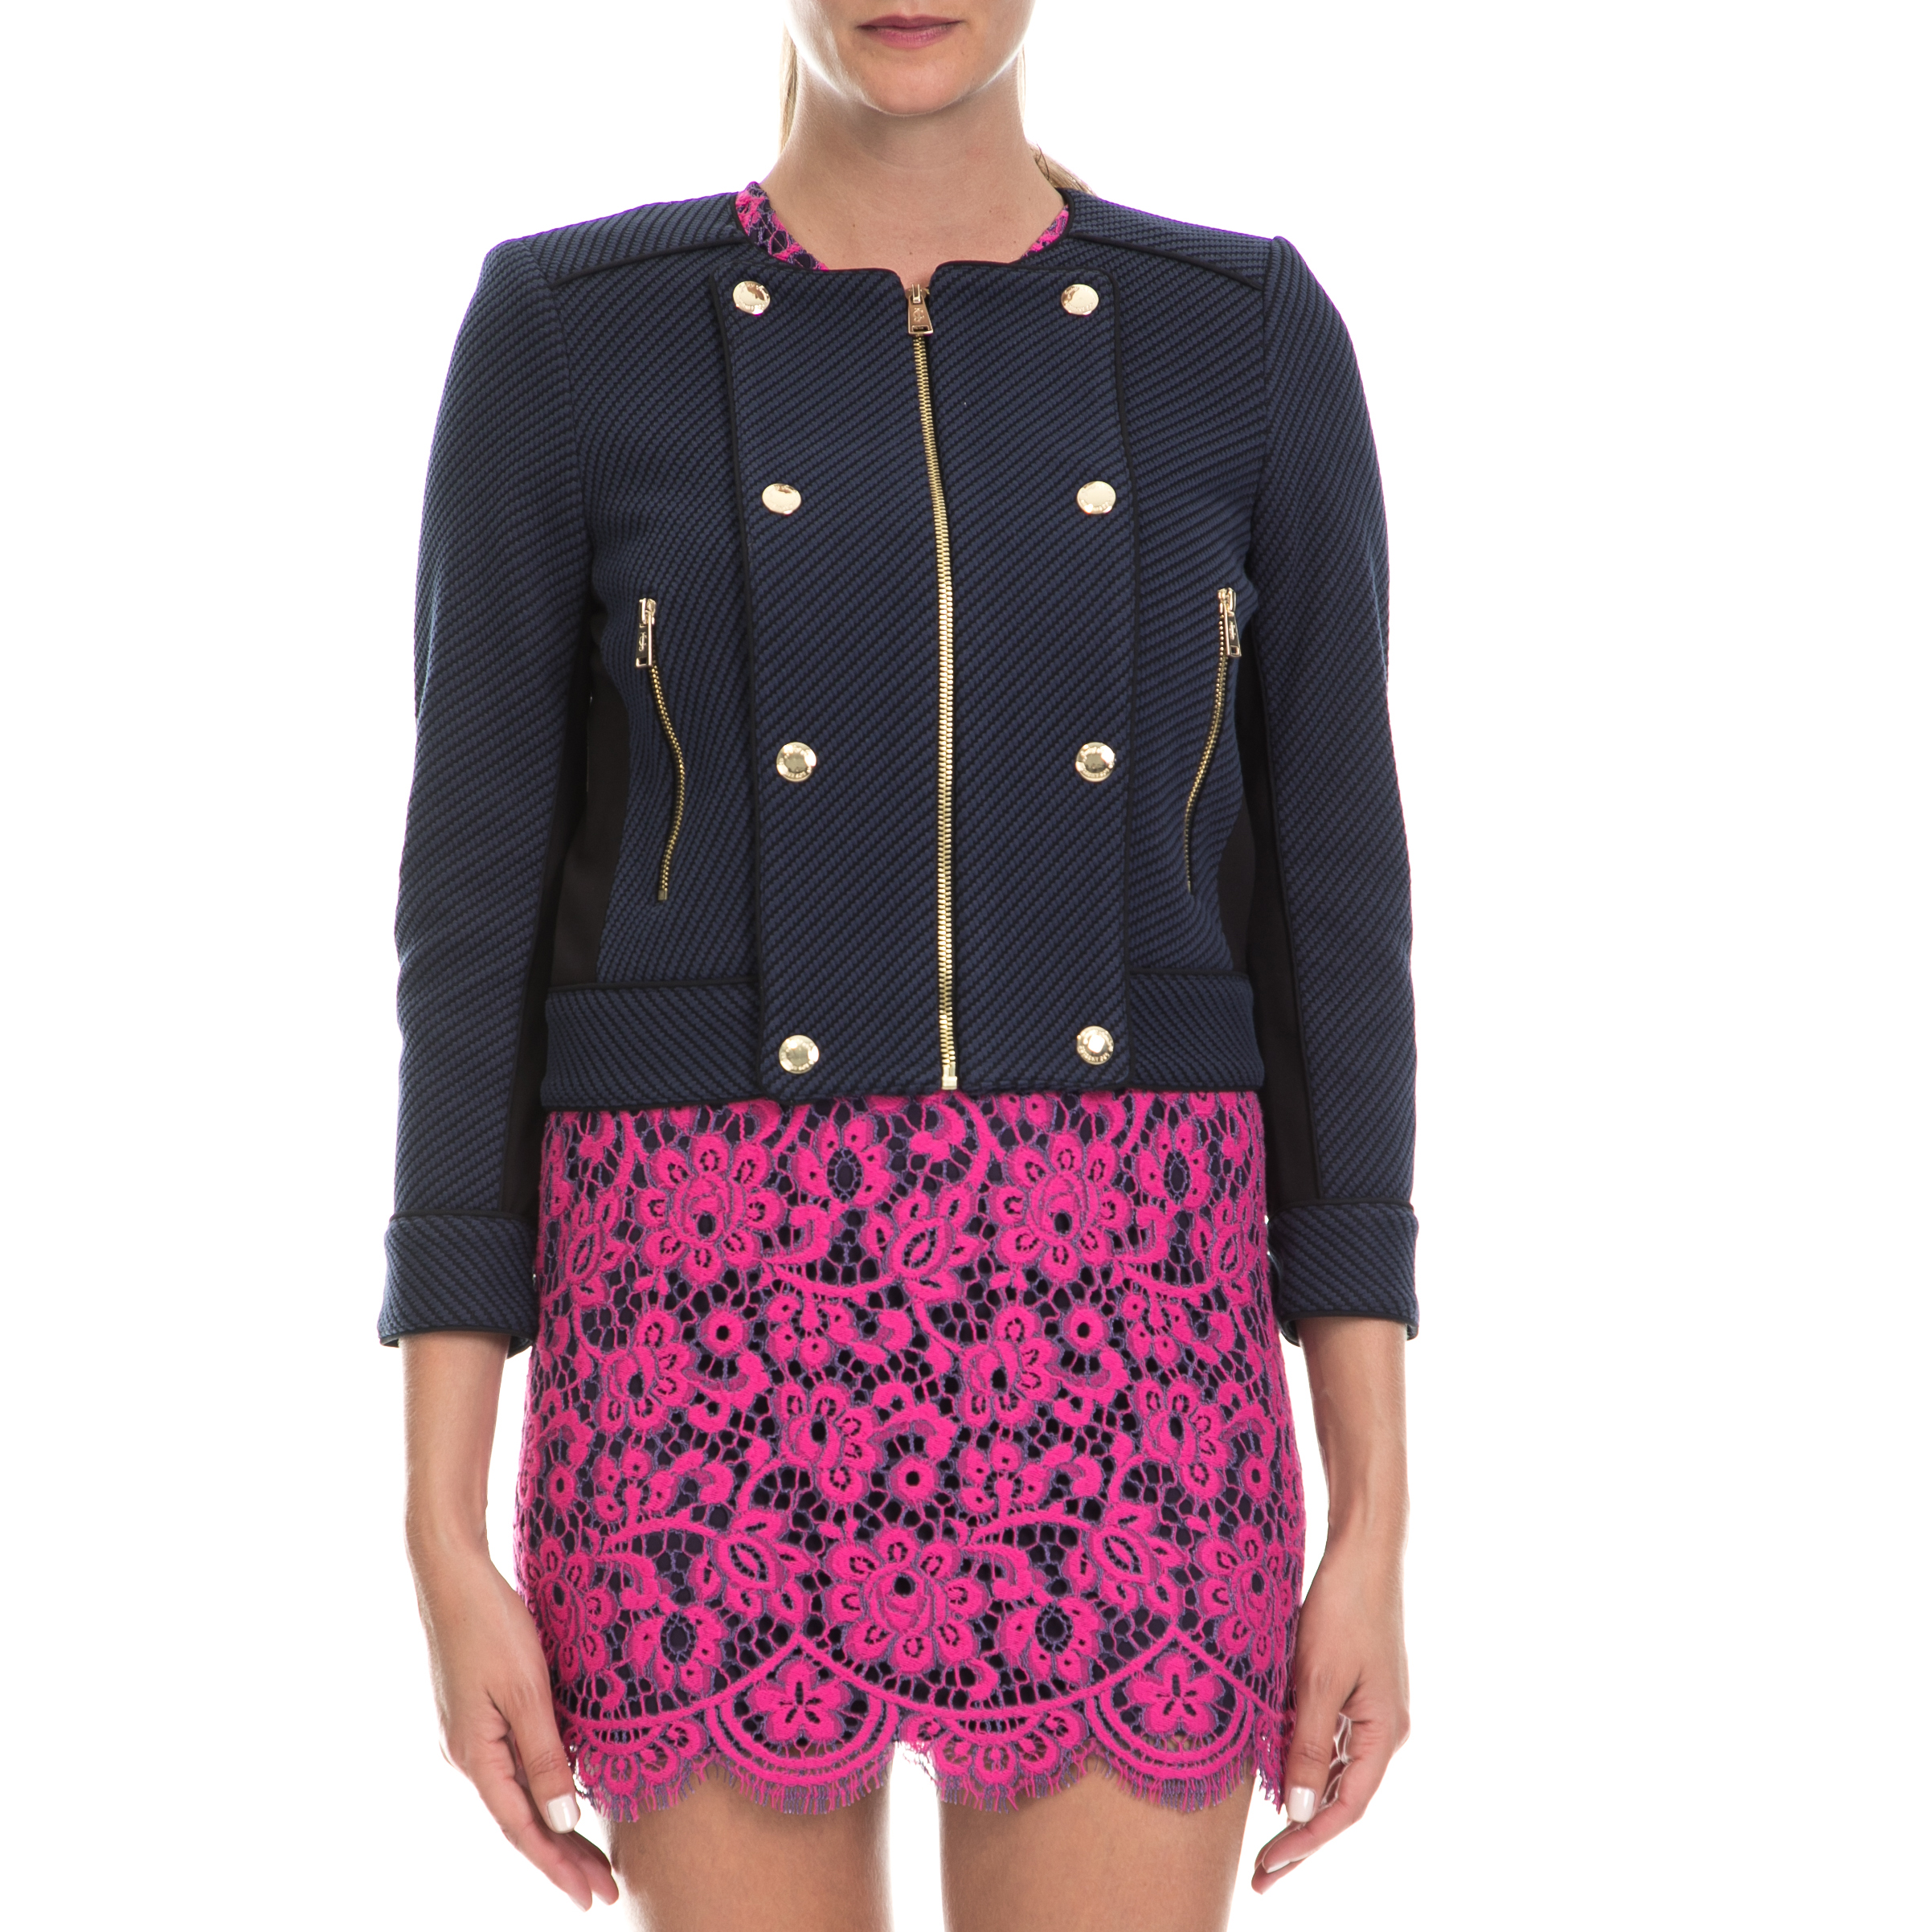 JUICY COUTURE – Γυναικείο σακάκι JUICY COUTURE μπλε